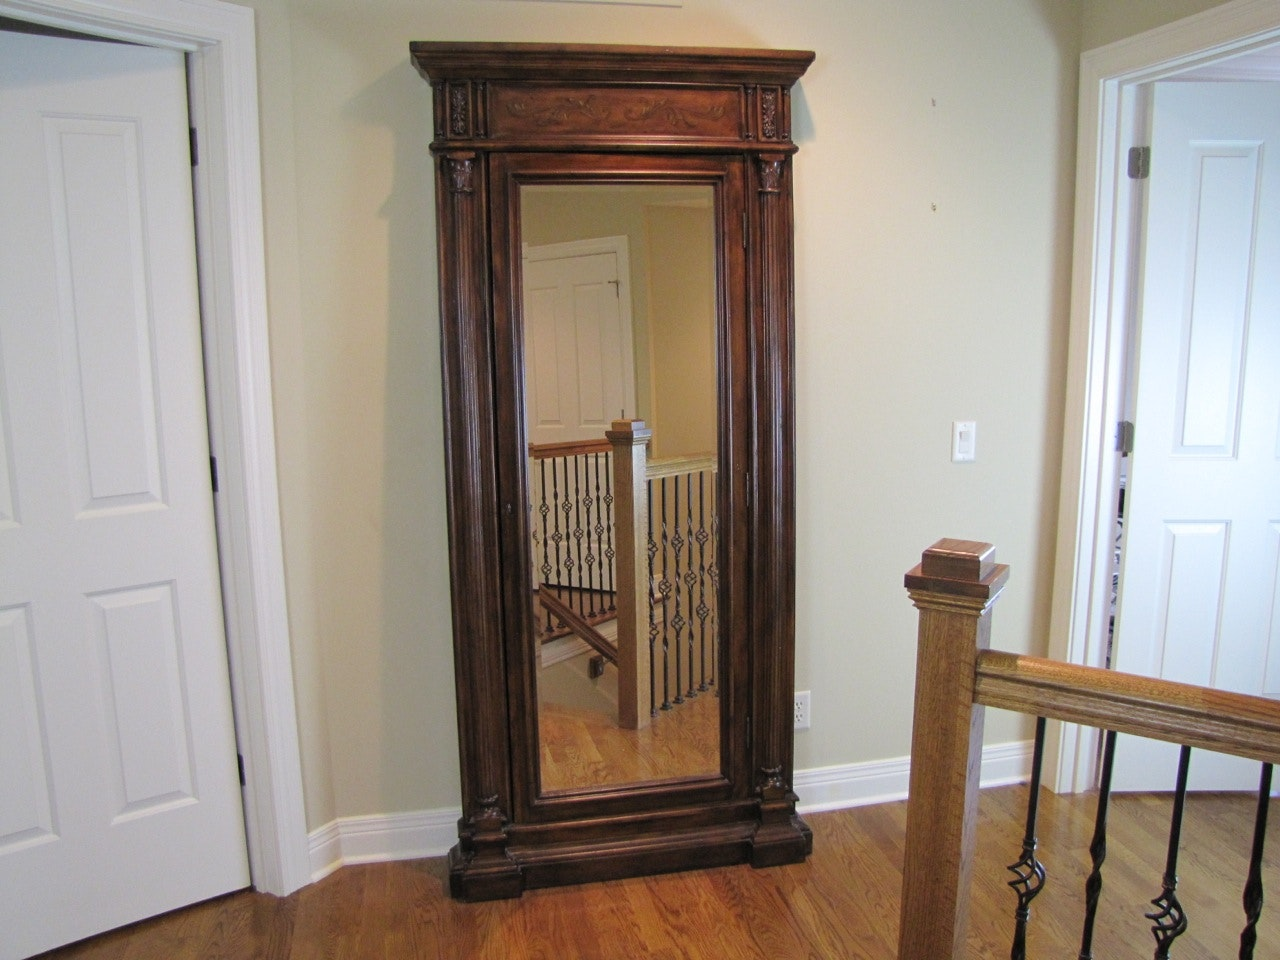 Hooker Furniture Accents Seven Seas Floor Mirror W/Jewelry Armoir ...